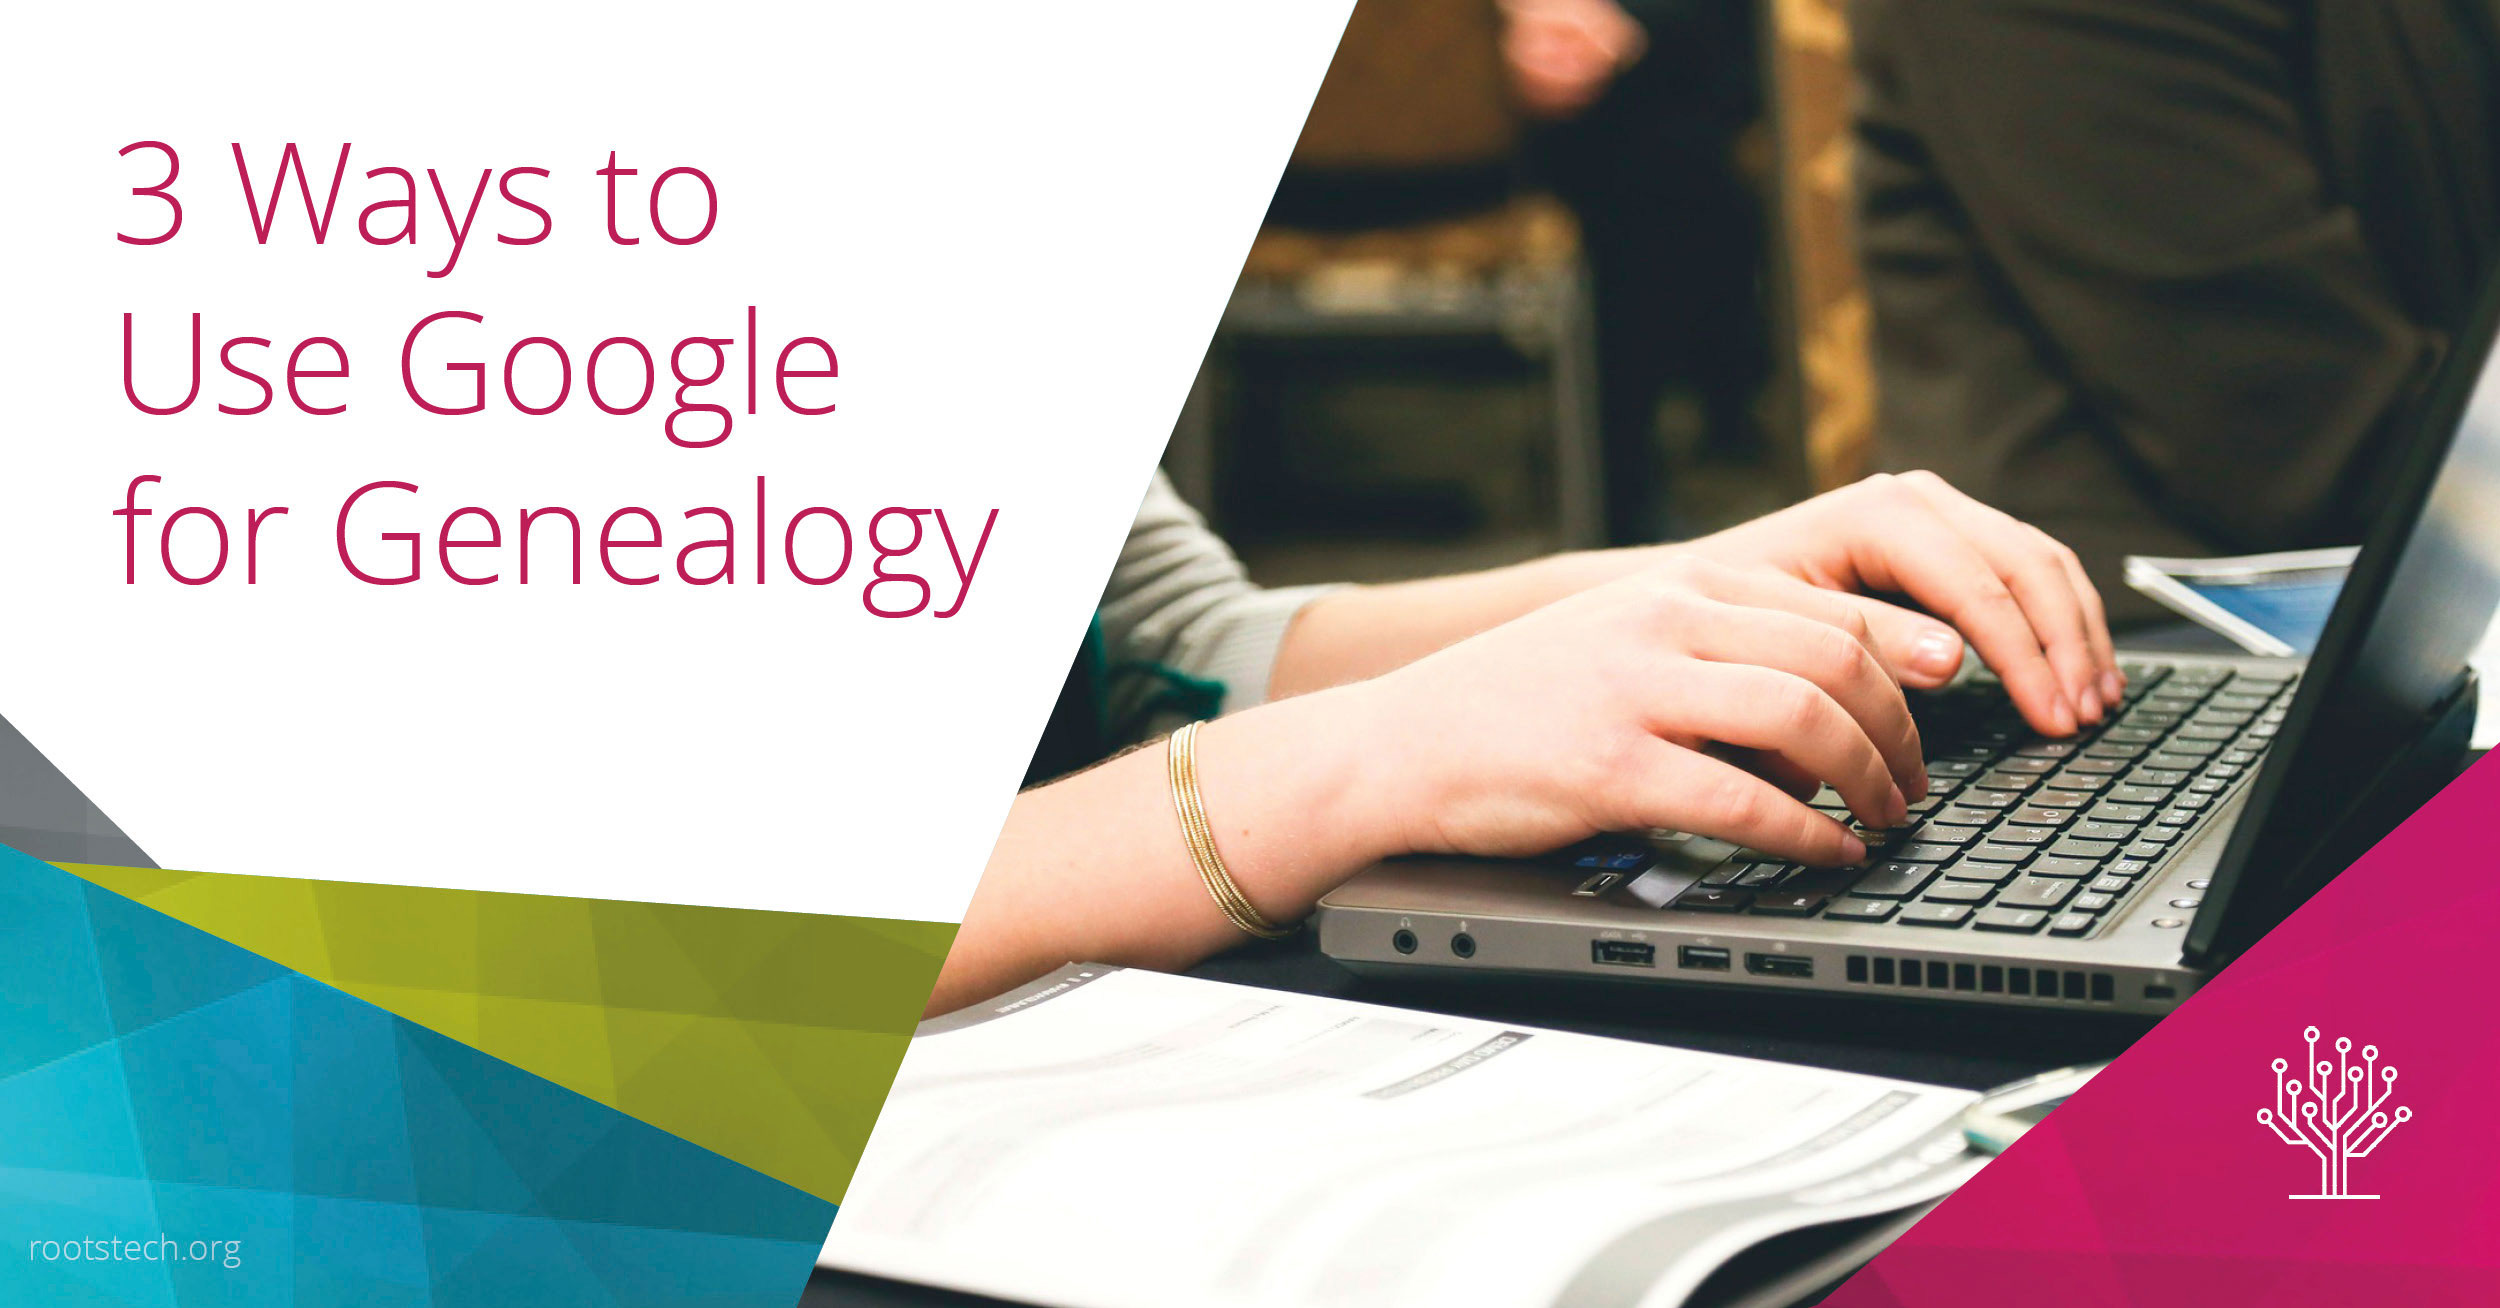 Lisa Louise Cooke: 3 Ways to Use Google for Genealogy